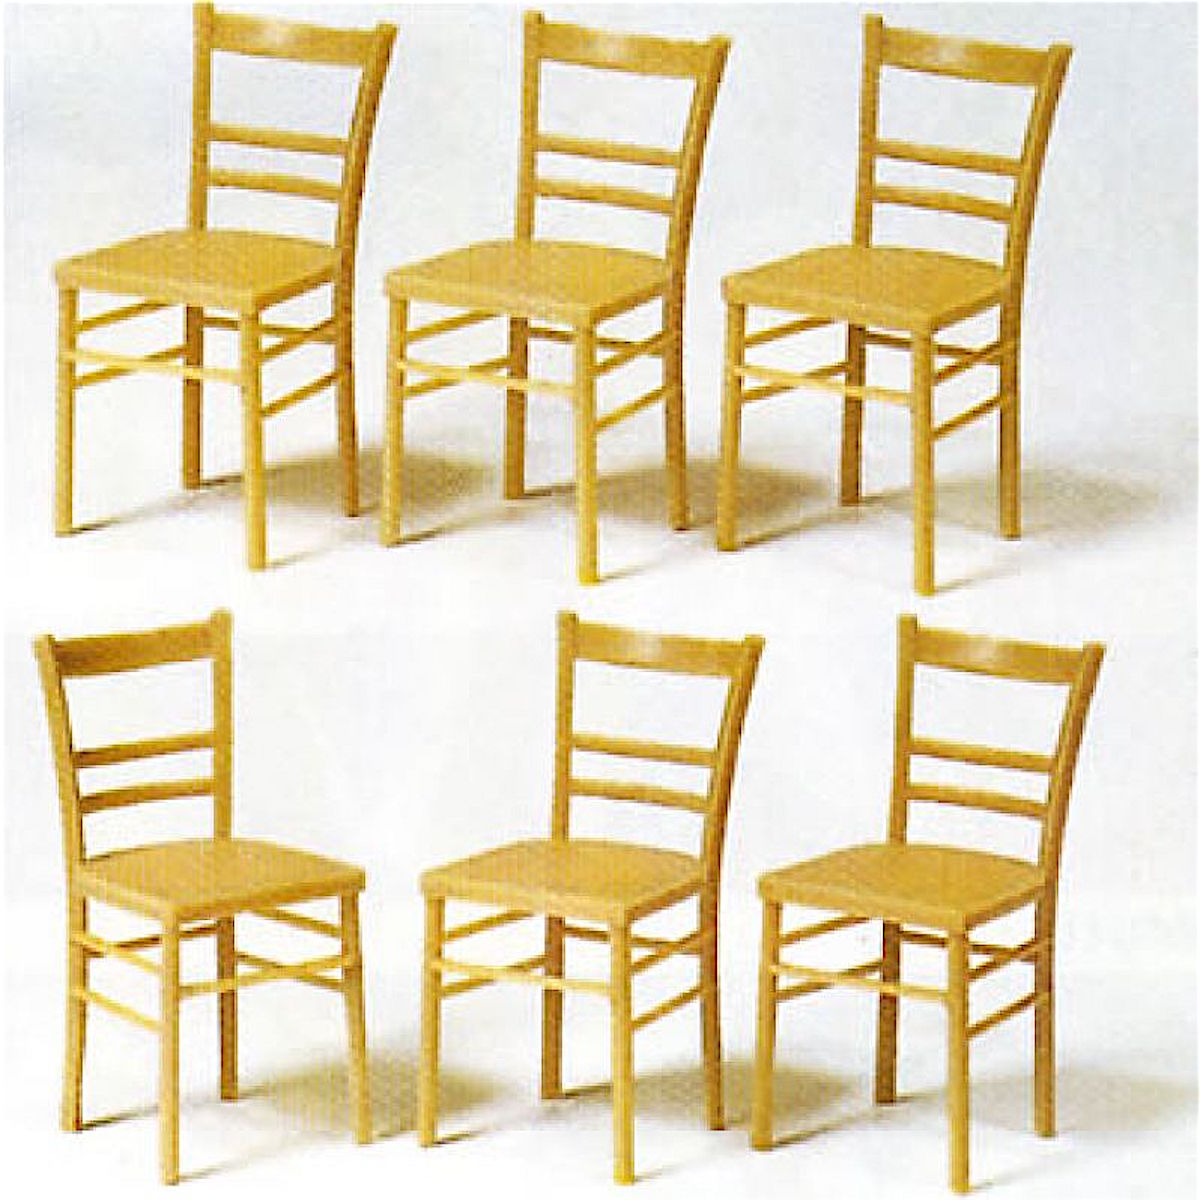 Stühle (Chairs)